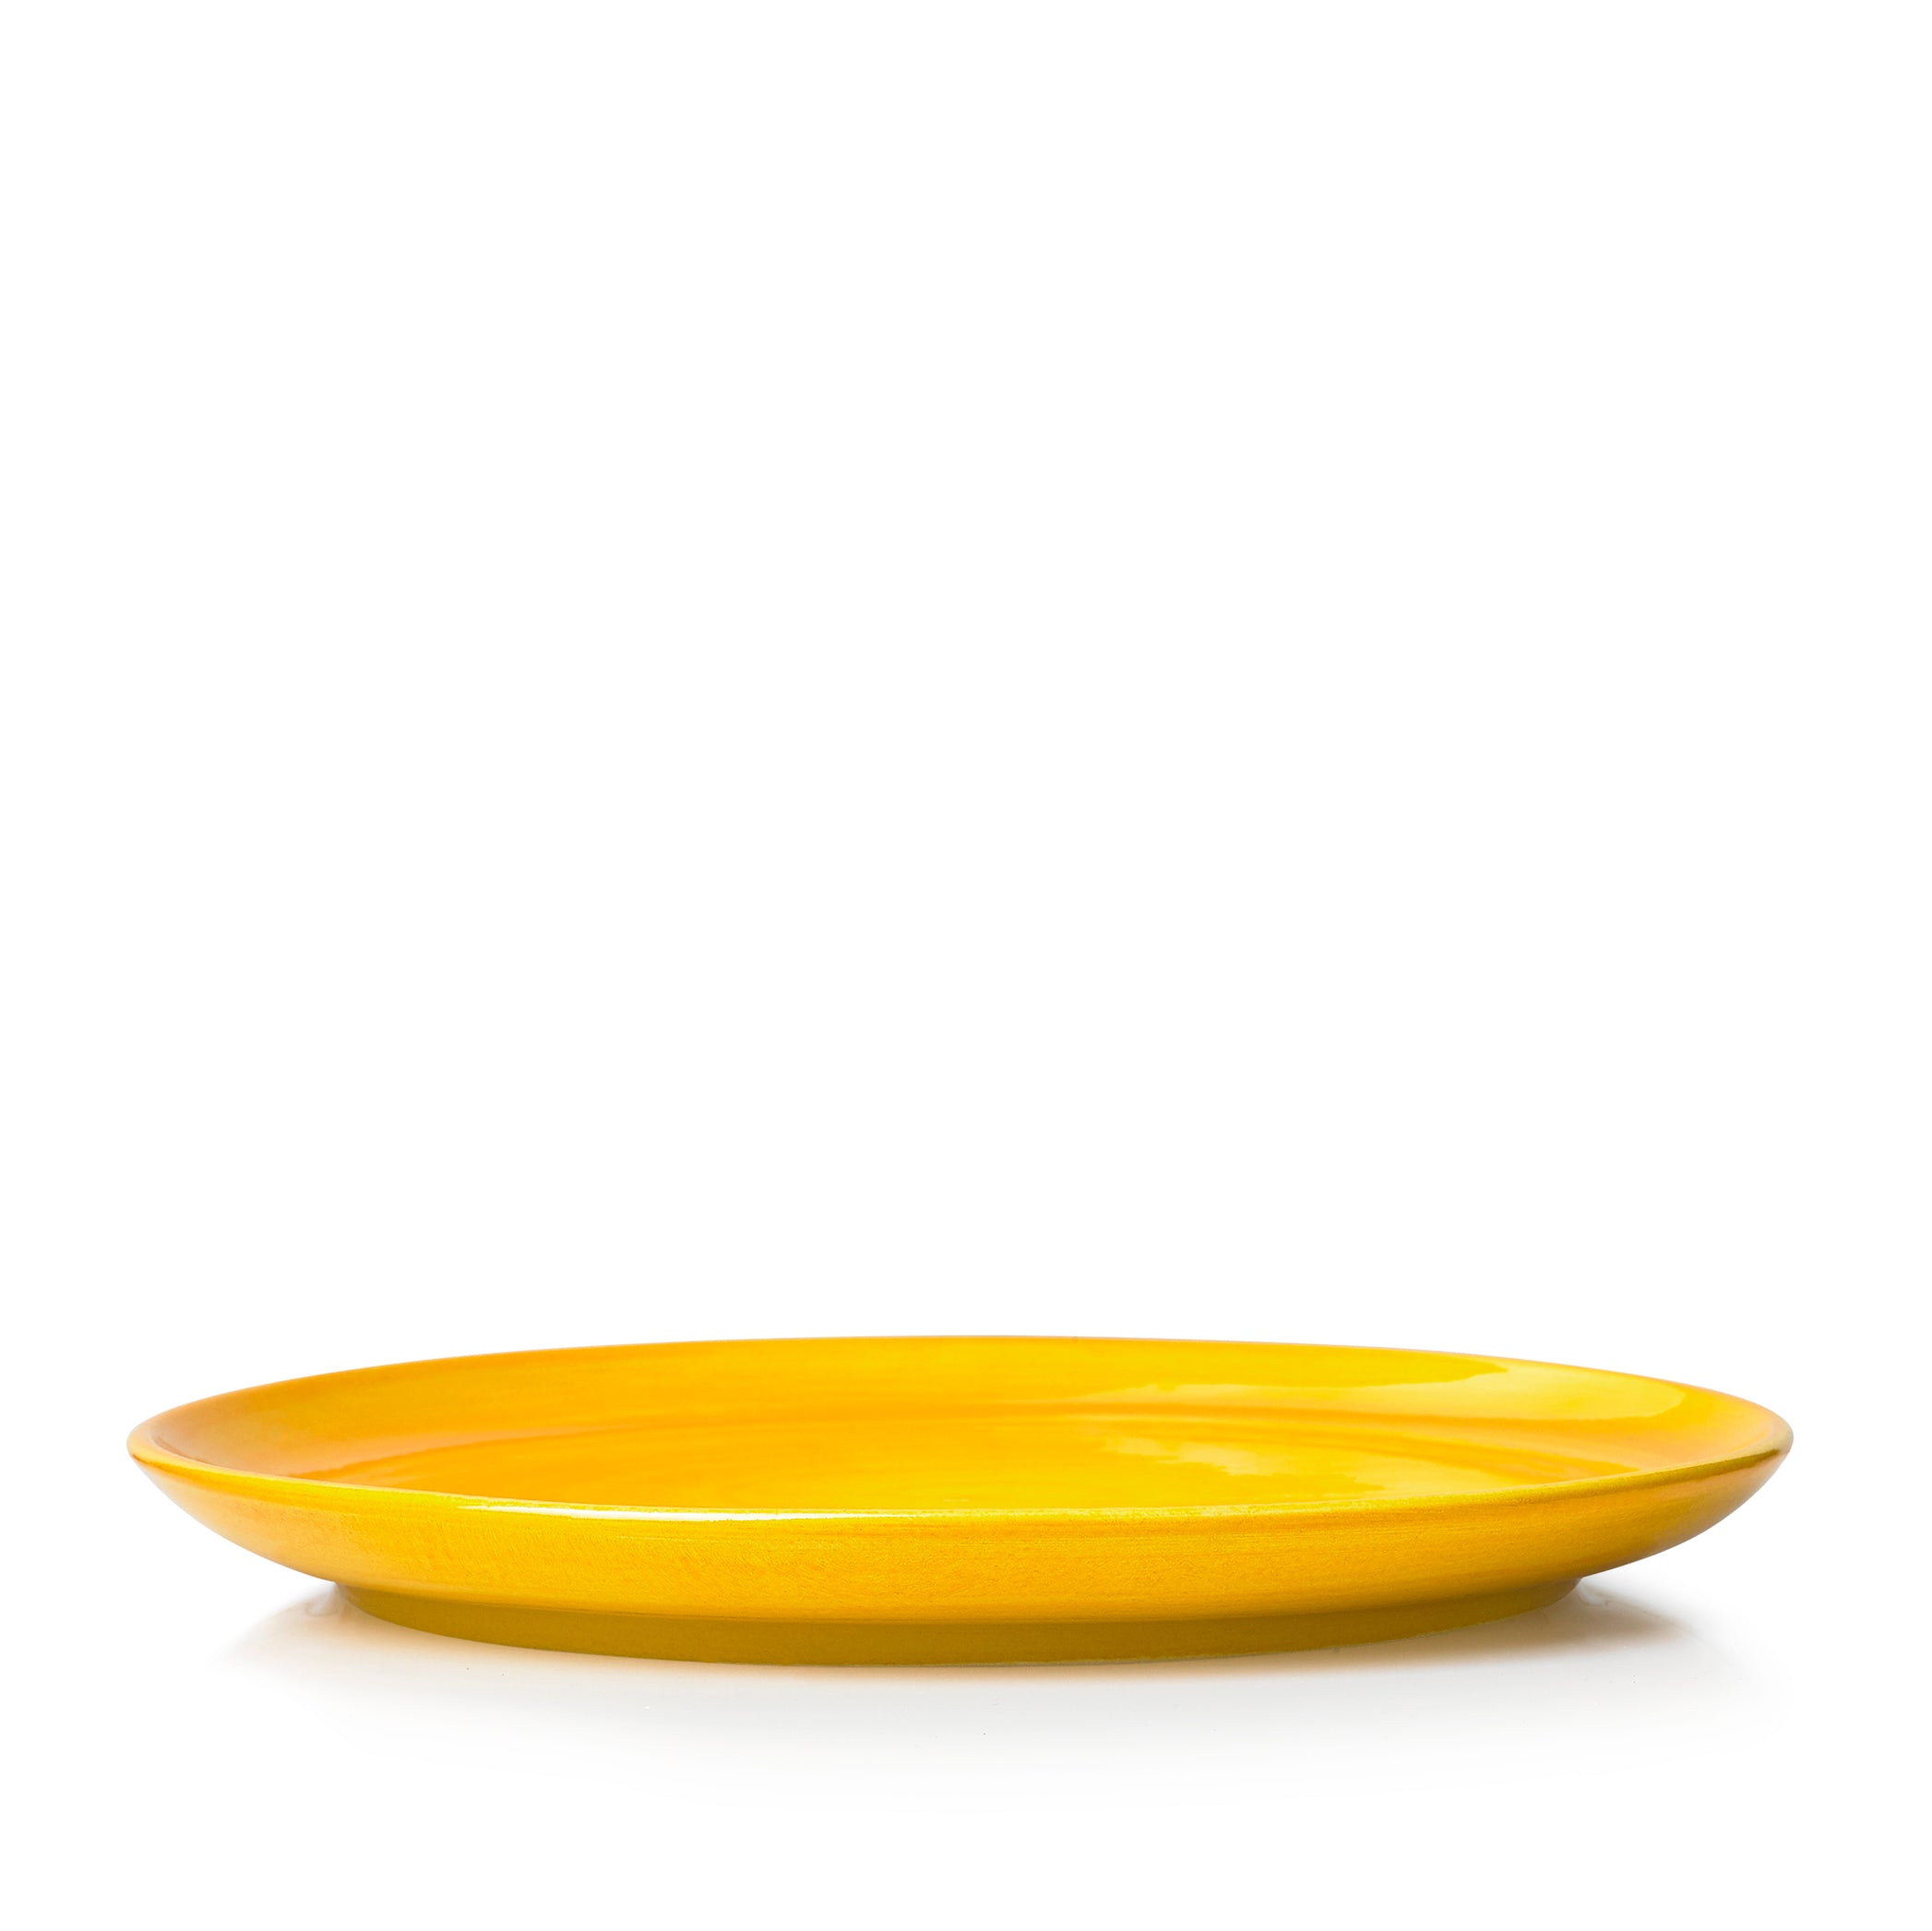 "S&B ""La Couronne"" 26cm Ceramic Dinner Plate in Yellow"